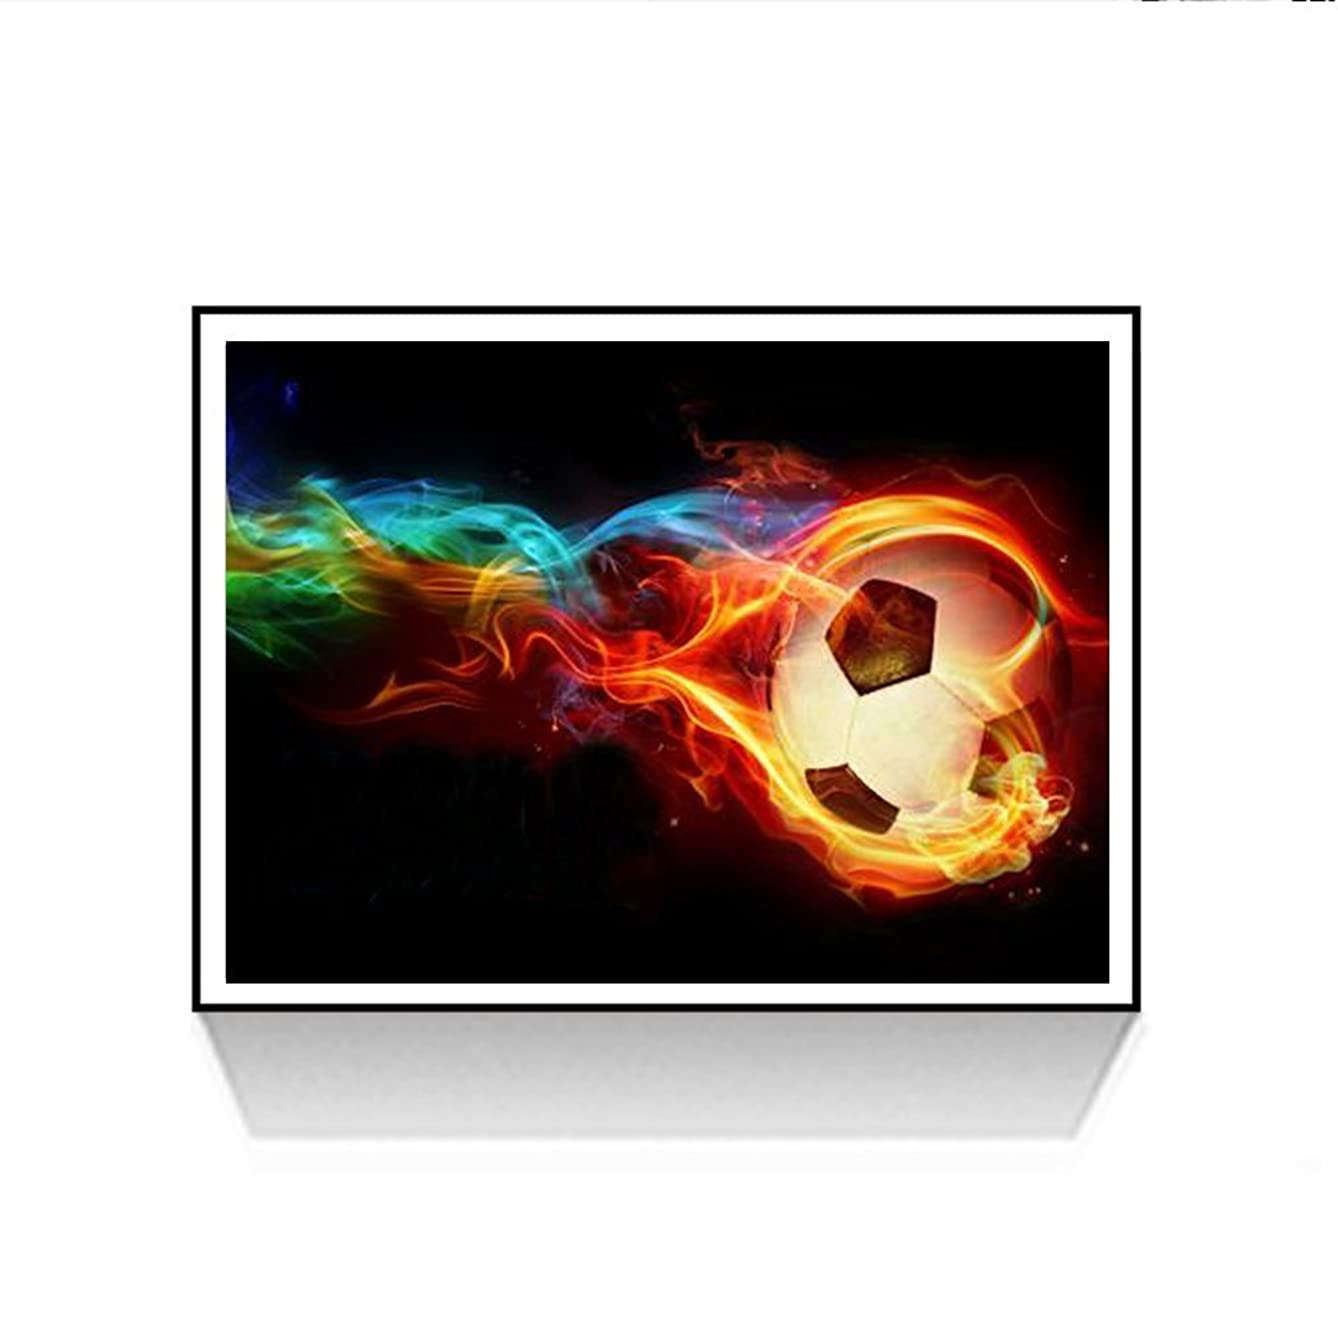 5D Diamond Painting Needlework Mosaic DIY Diamond Stitch Kit Embroidery for Bedroom Decor Gifts- Full Drill Cool Football Fire Soccer 30 x 40 cm/11.81 x 15.75inch